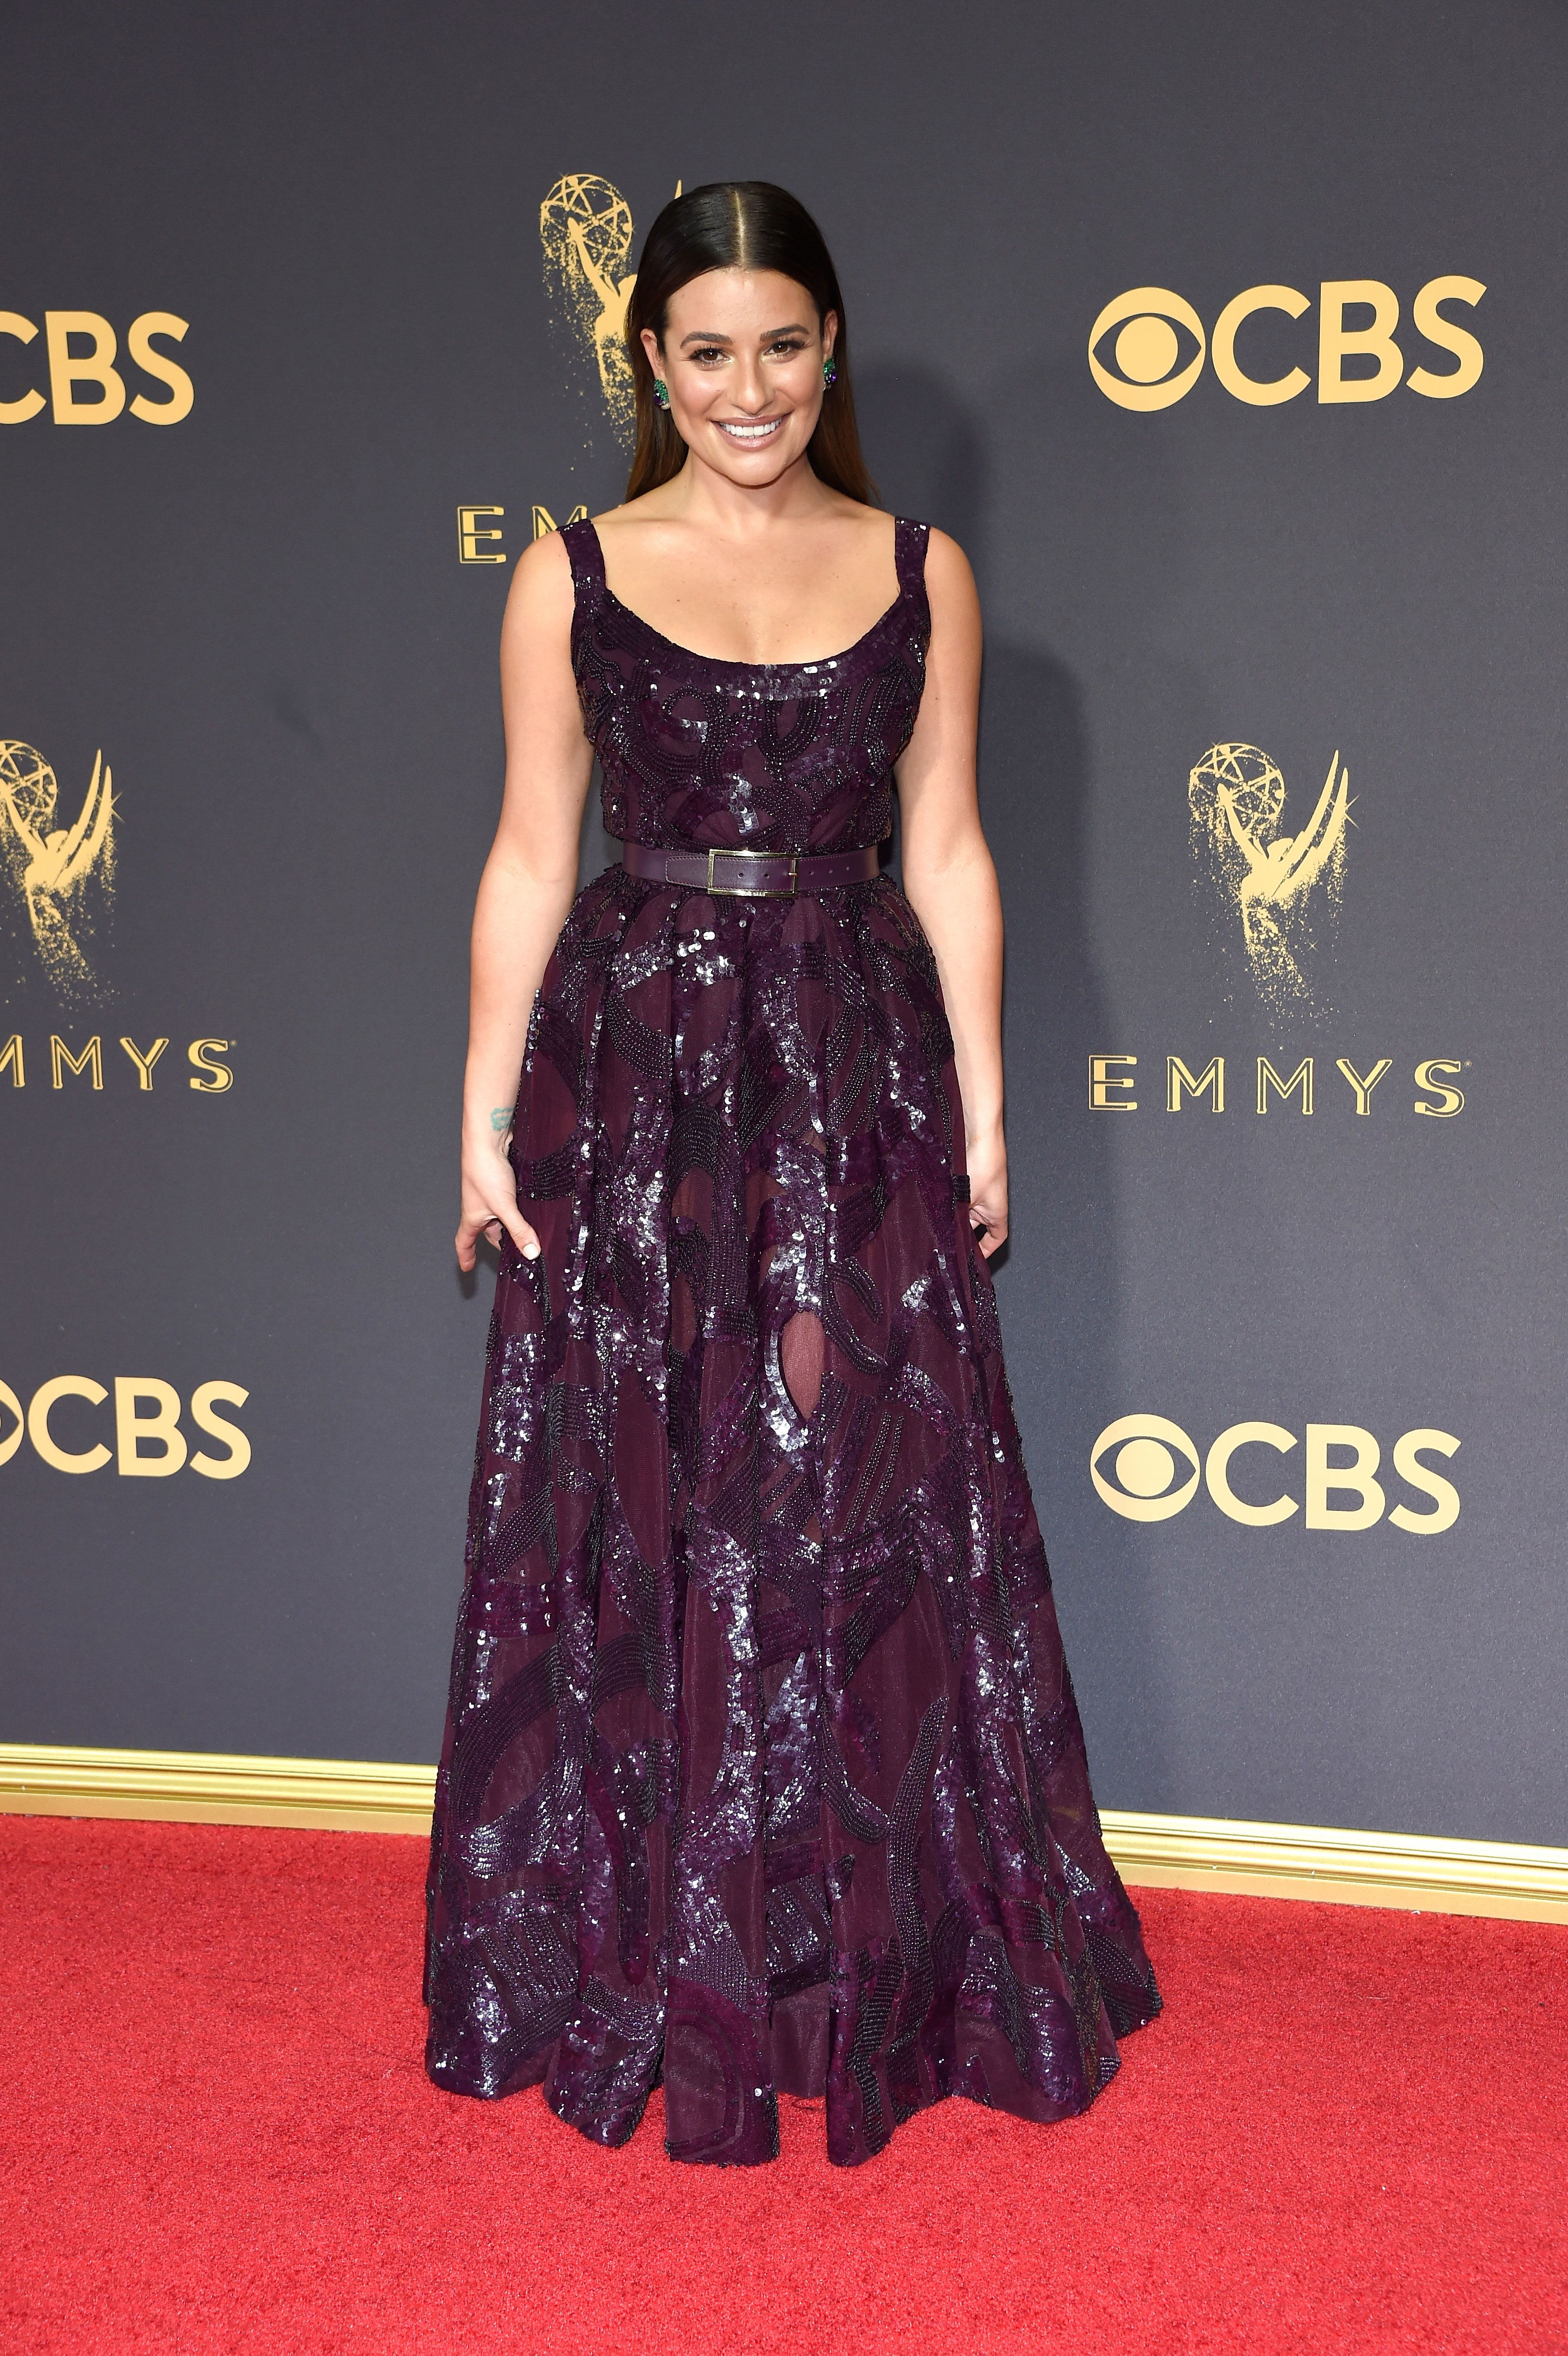 Best Emmy Red Carpet Dresses and Outfits 2017 - Emmy Awards Fashion